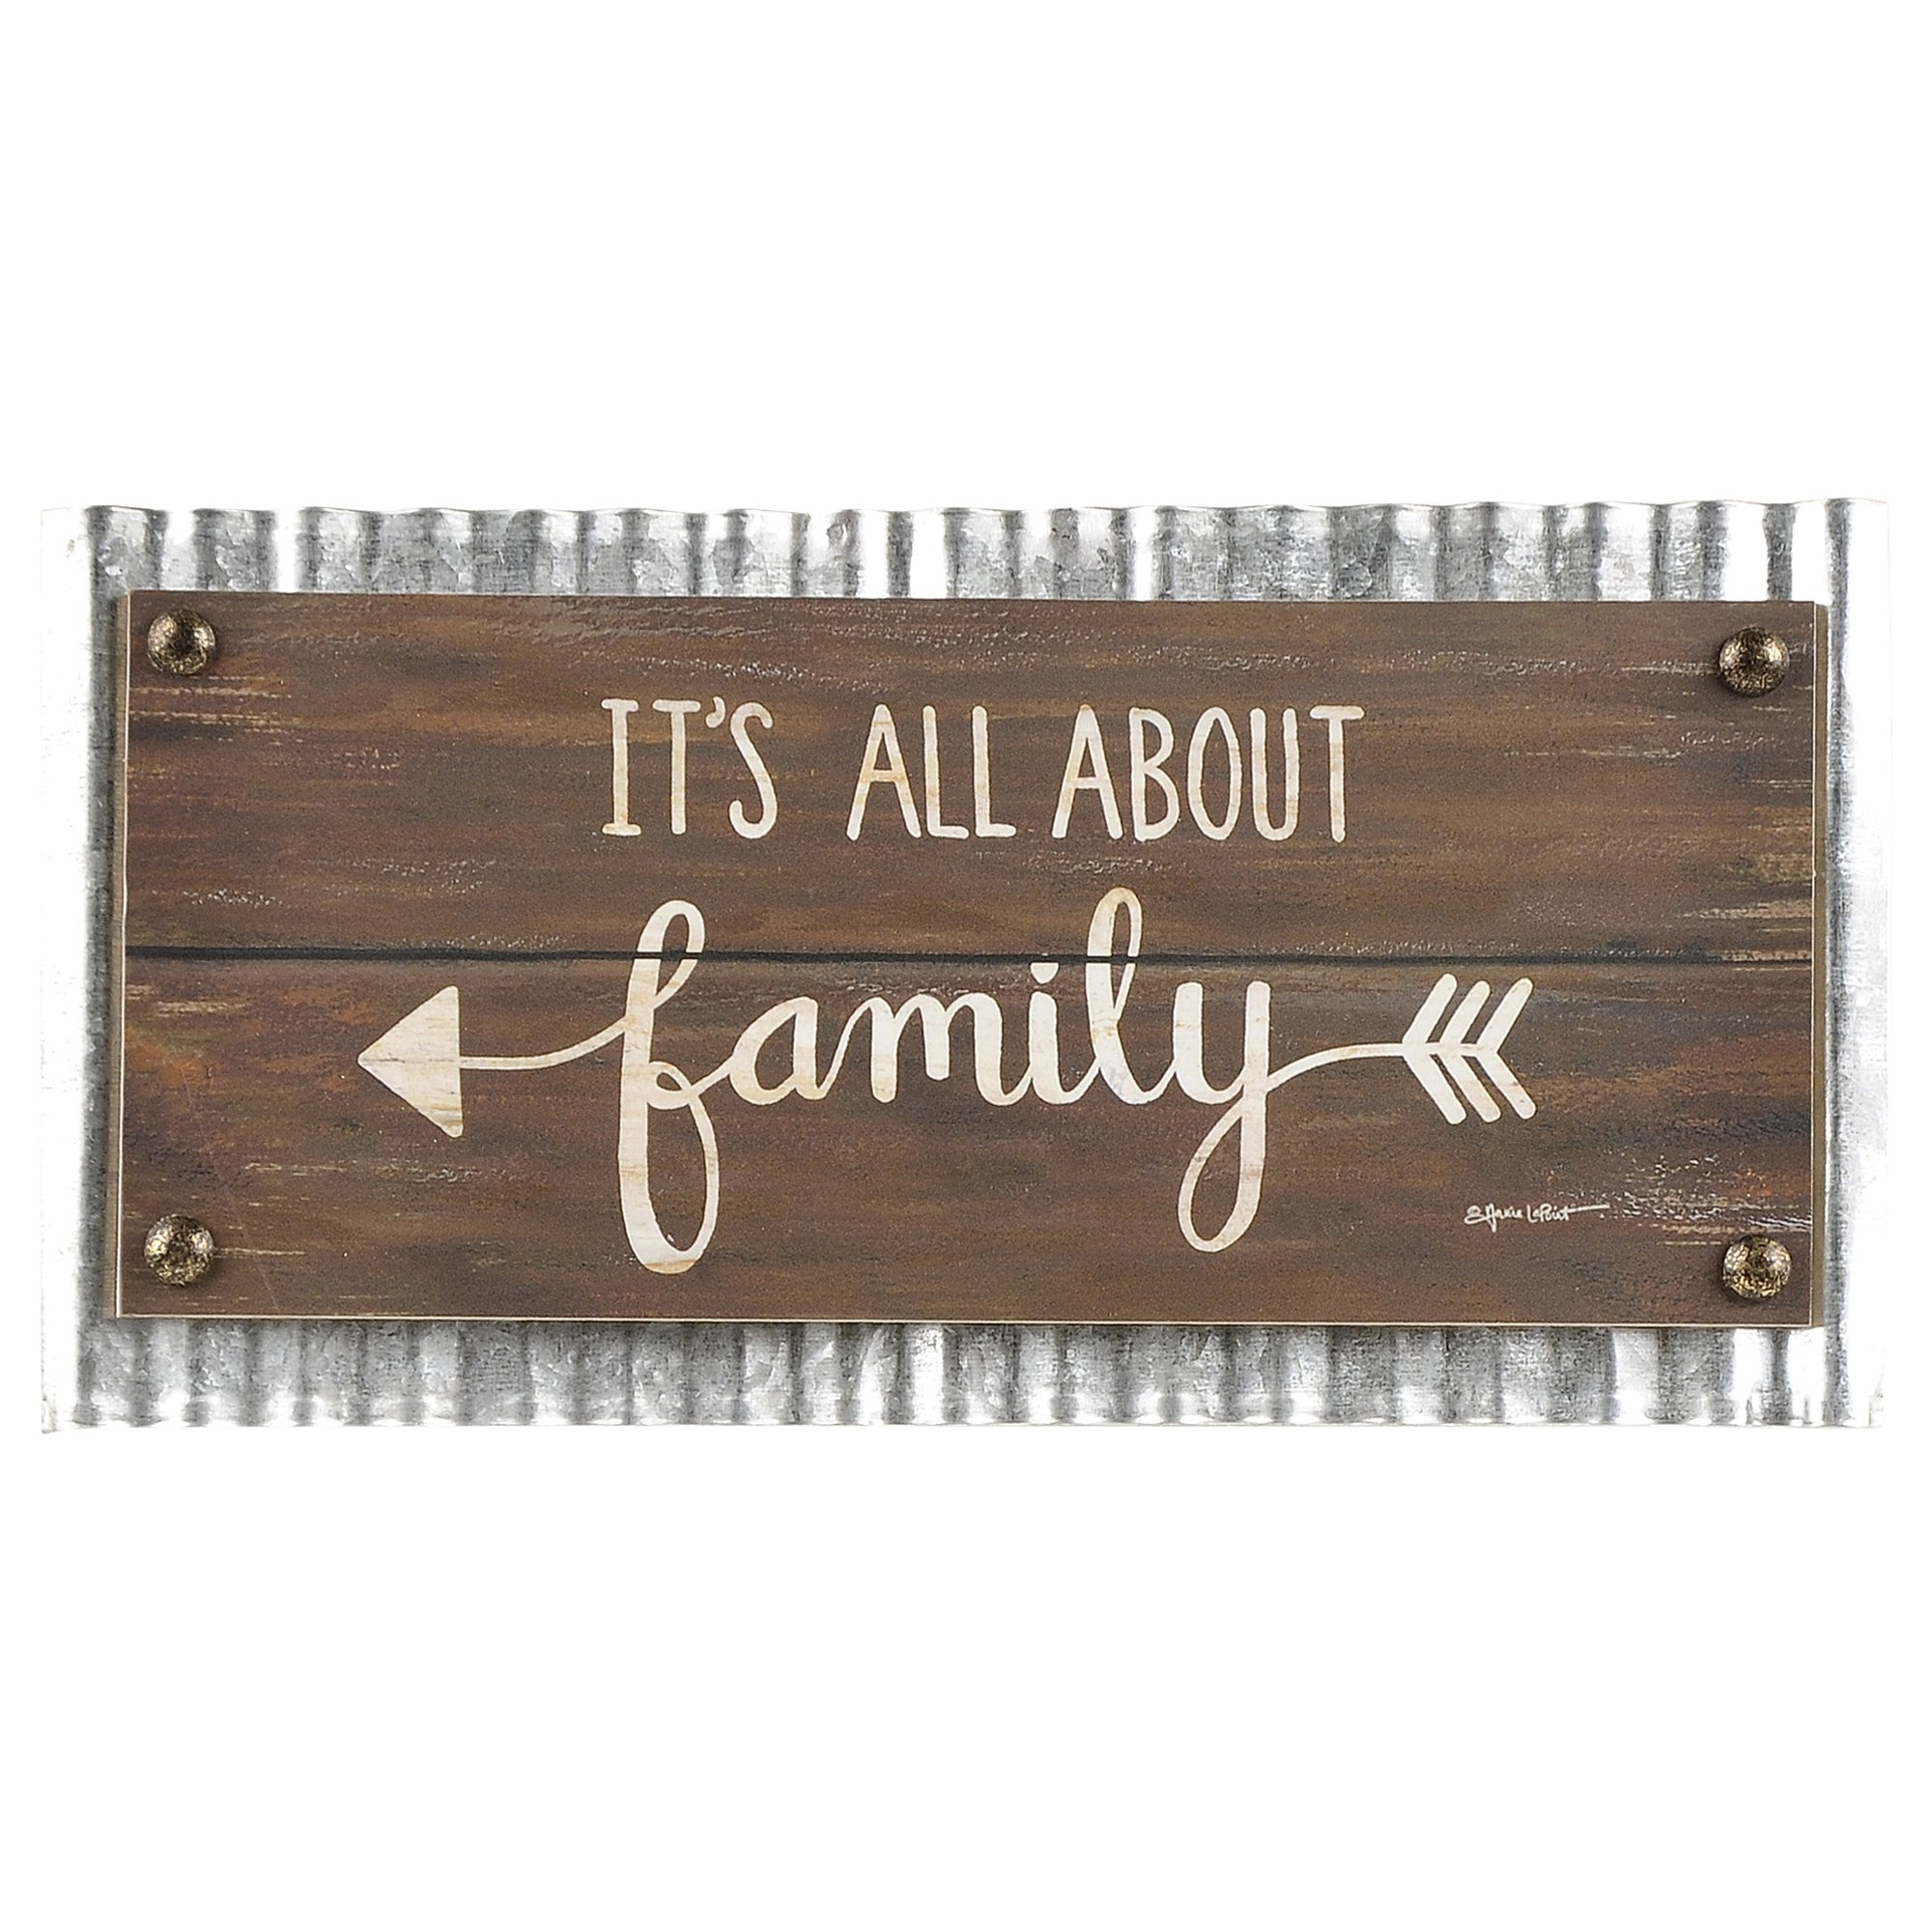 Blossom Bucket All About Family Arrow Galvanized Metal Frame 6 x 12 Inch Wood Wall Plaque Sign